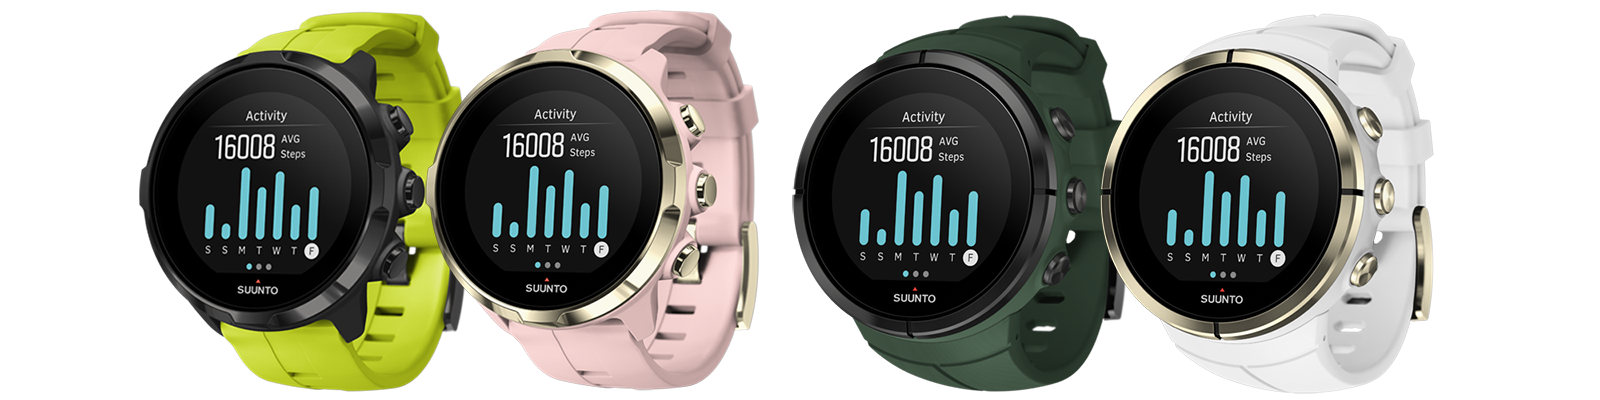 Customized collection grows with Suunto Spartan watches